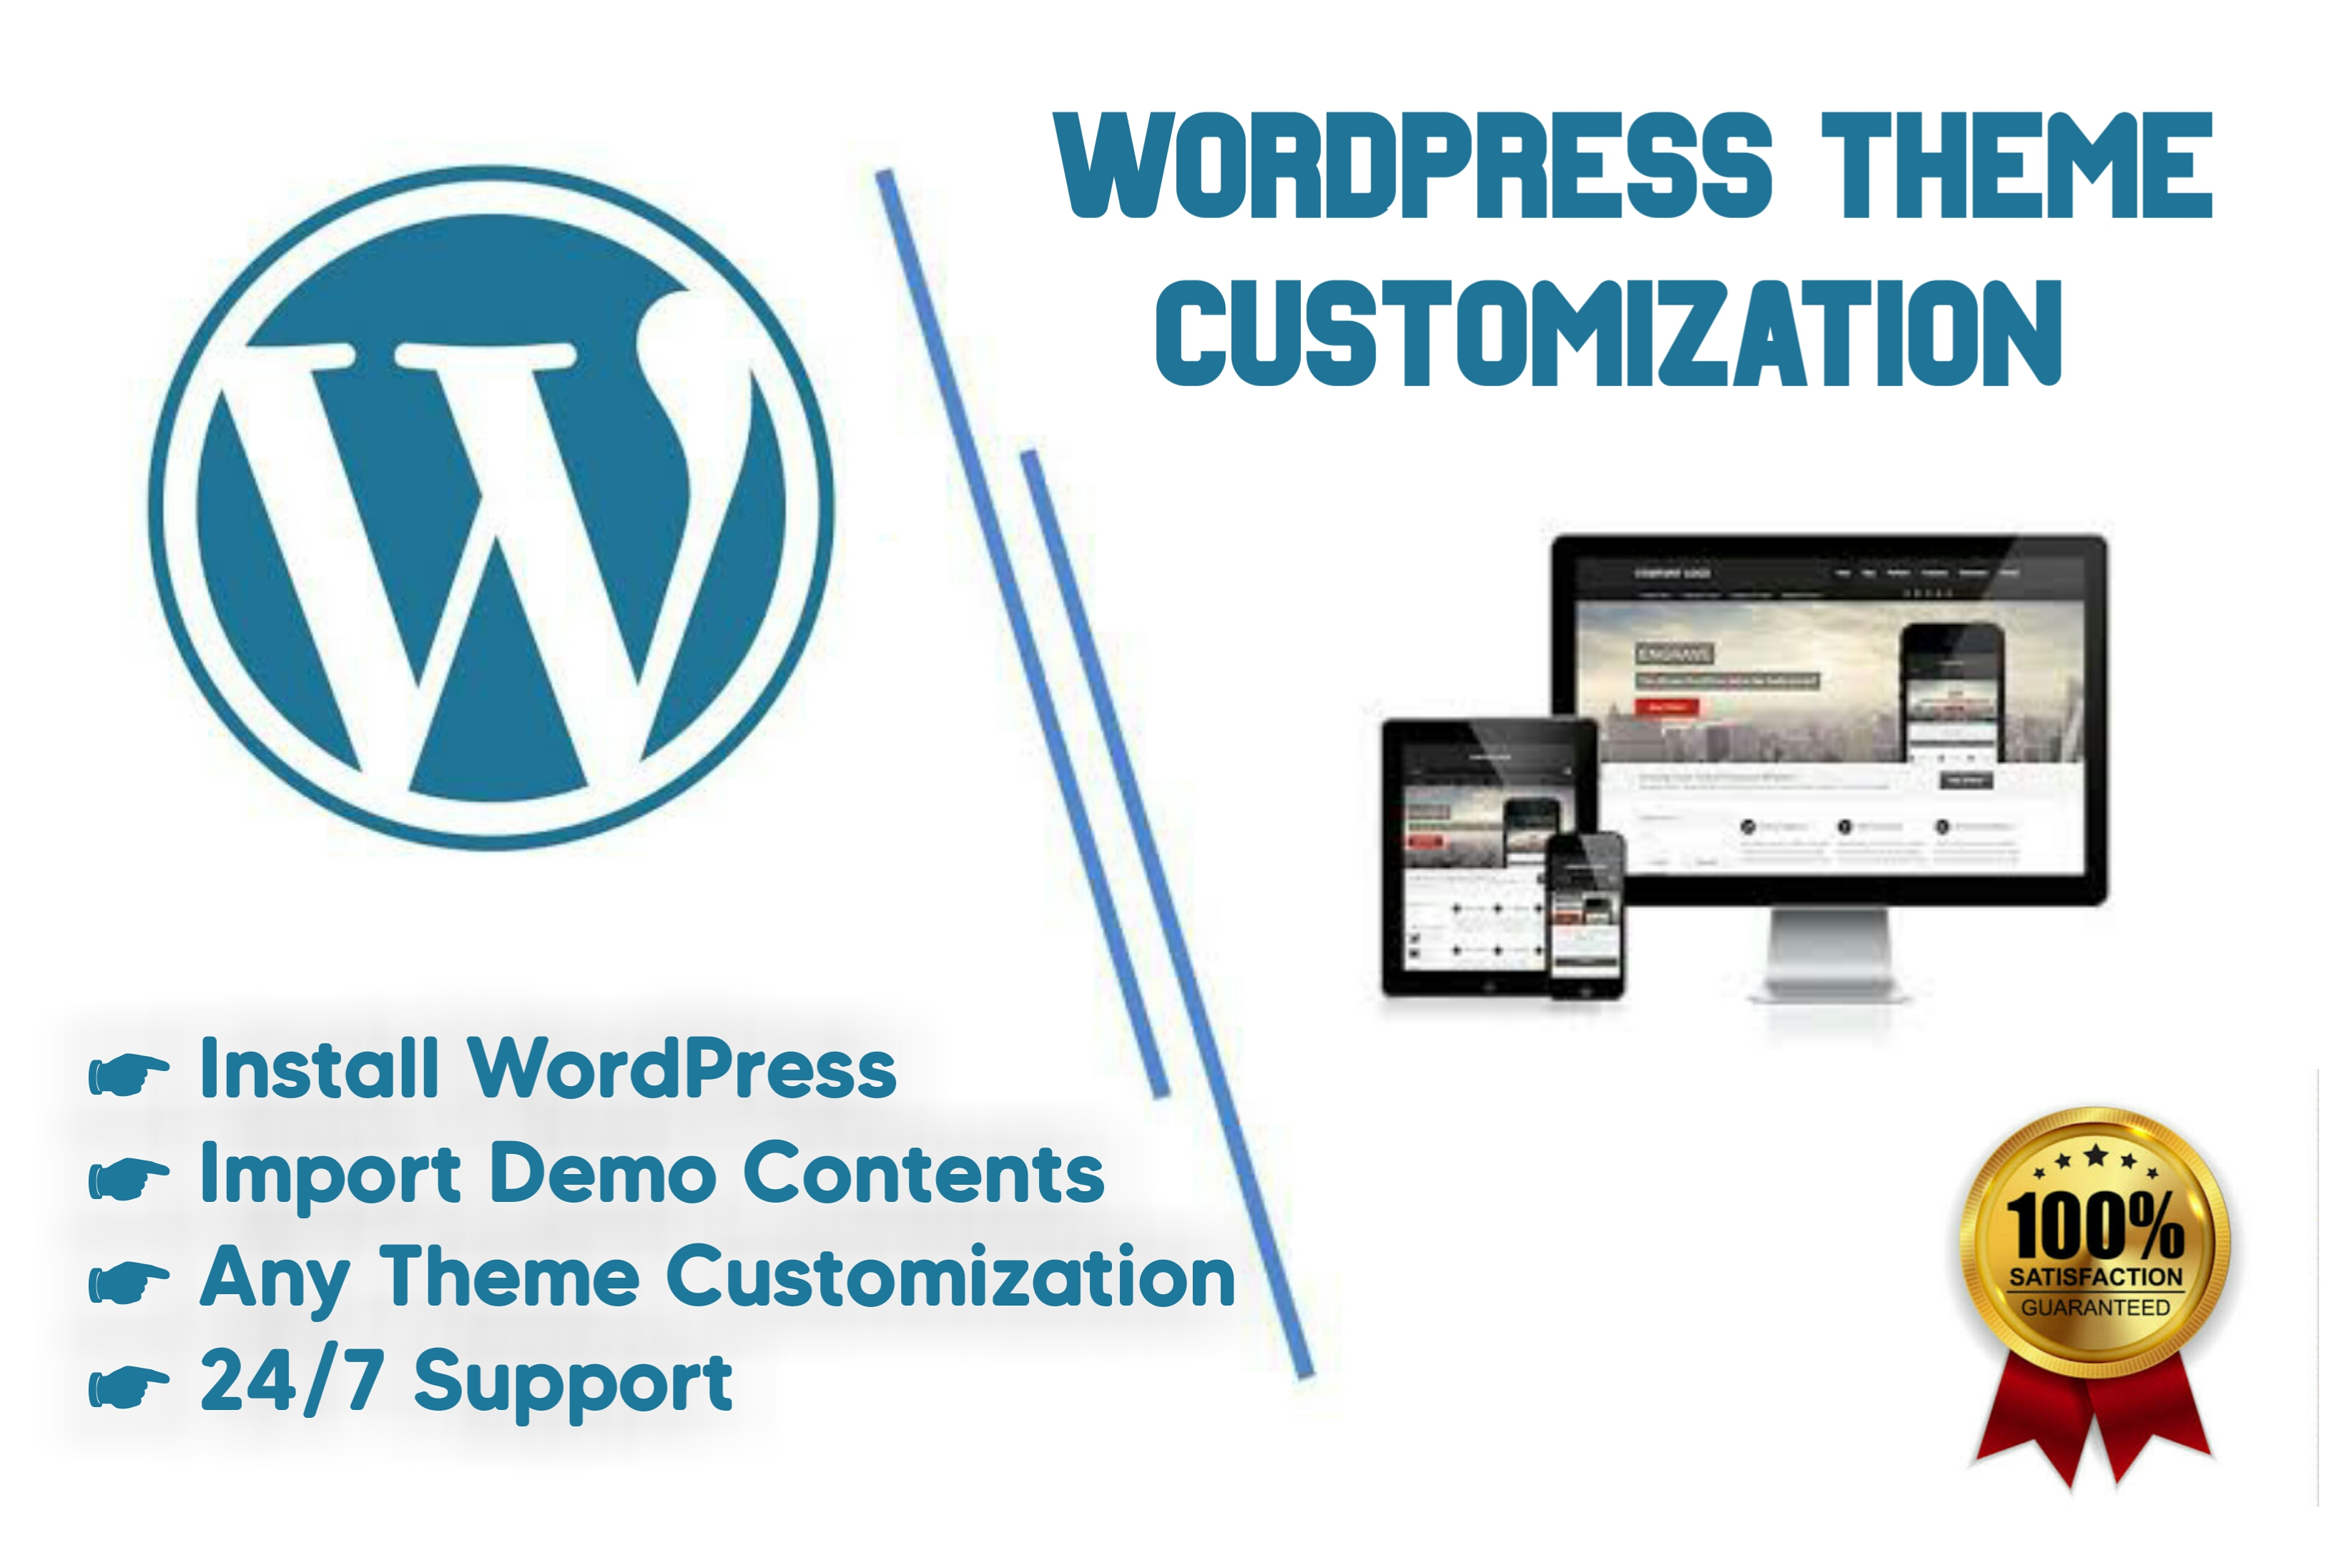 I will install wordpress,  theme customization and import demo